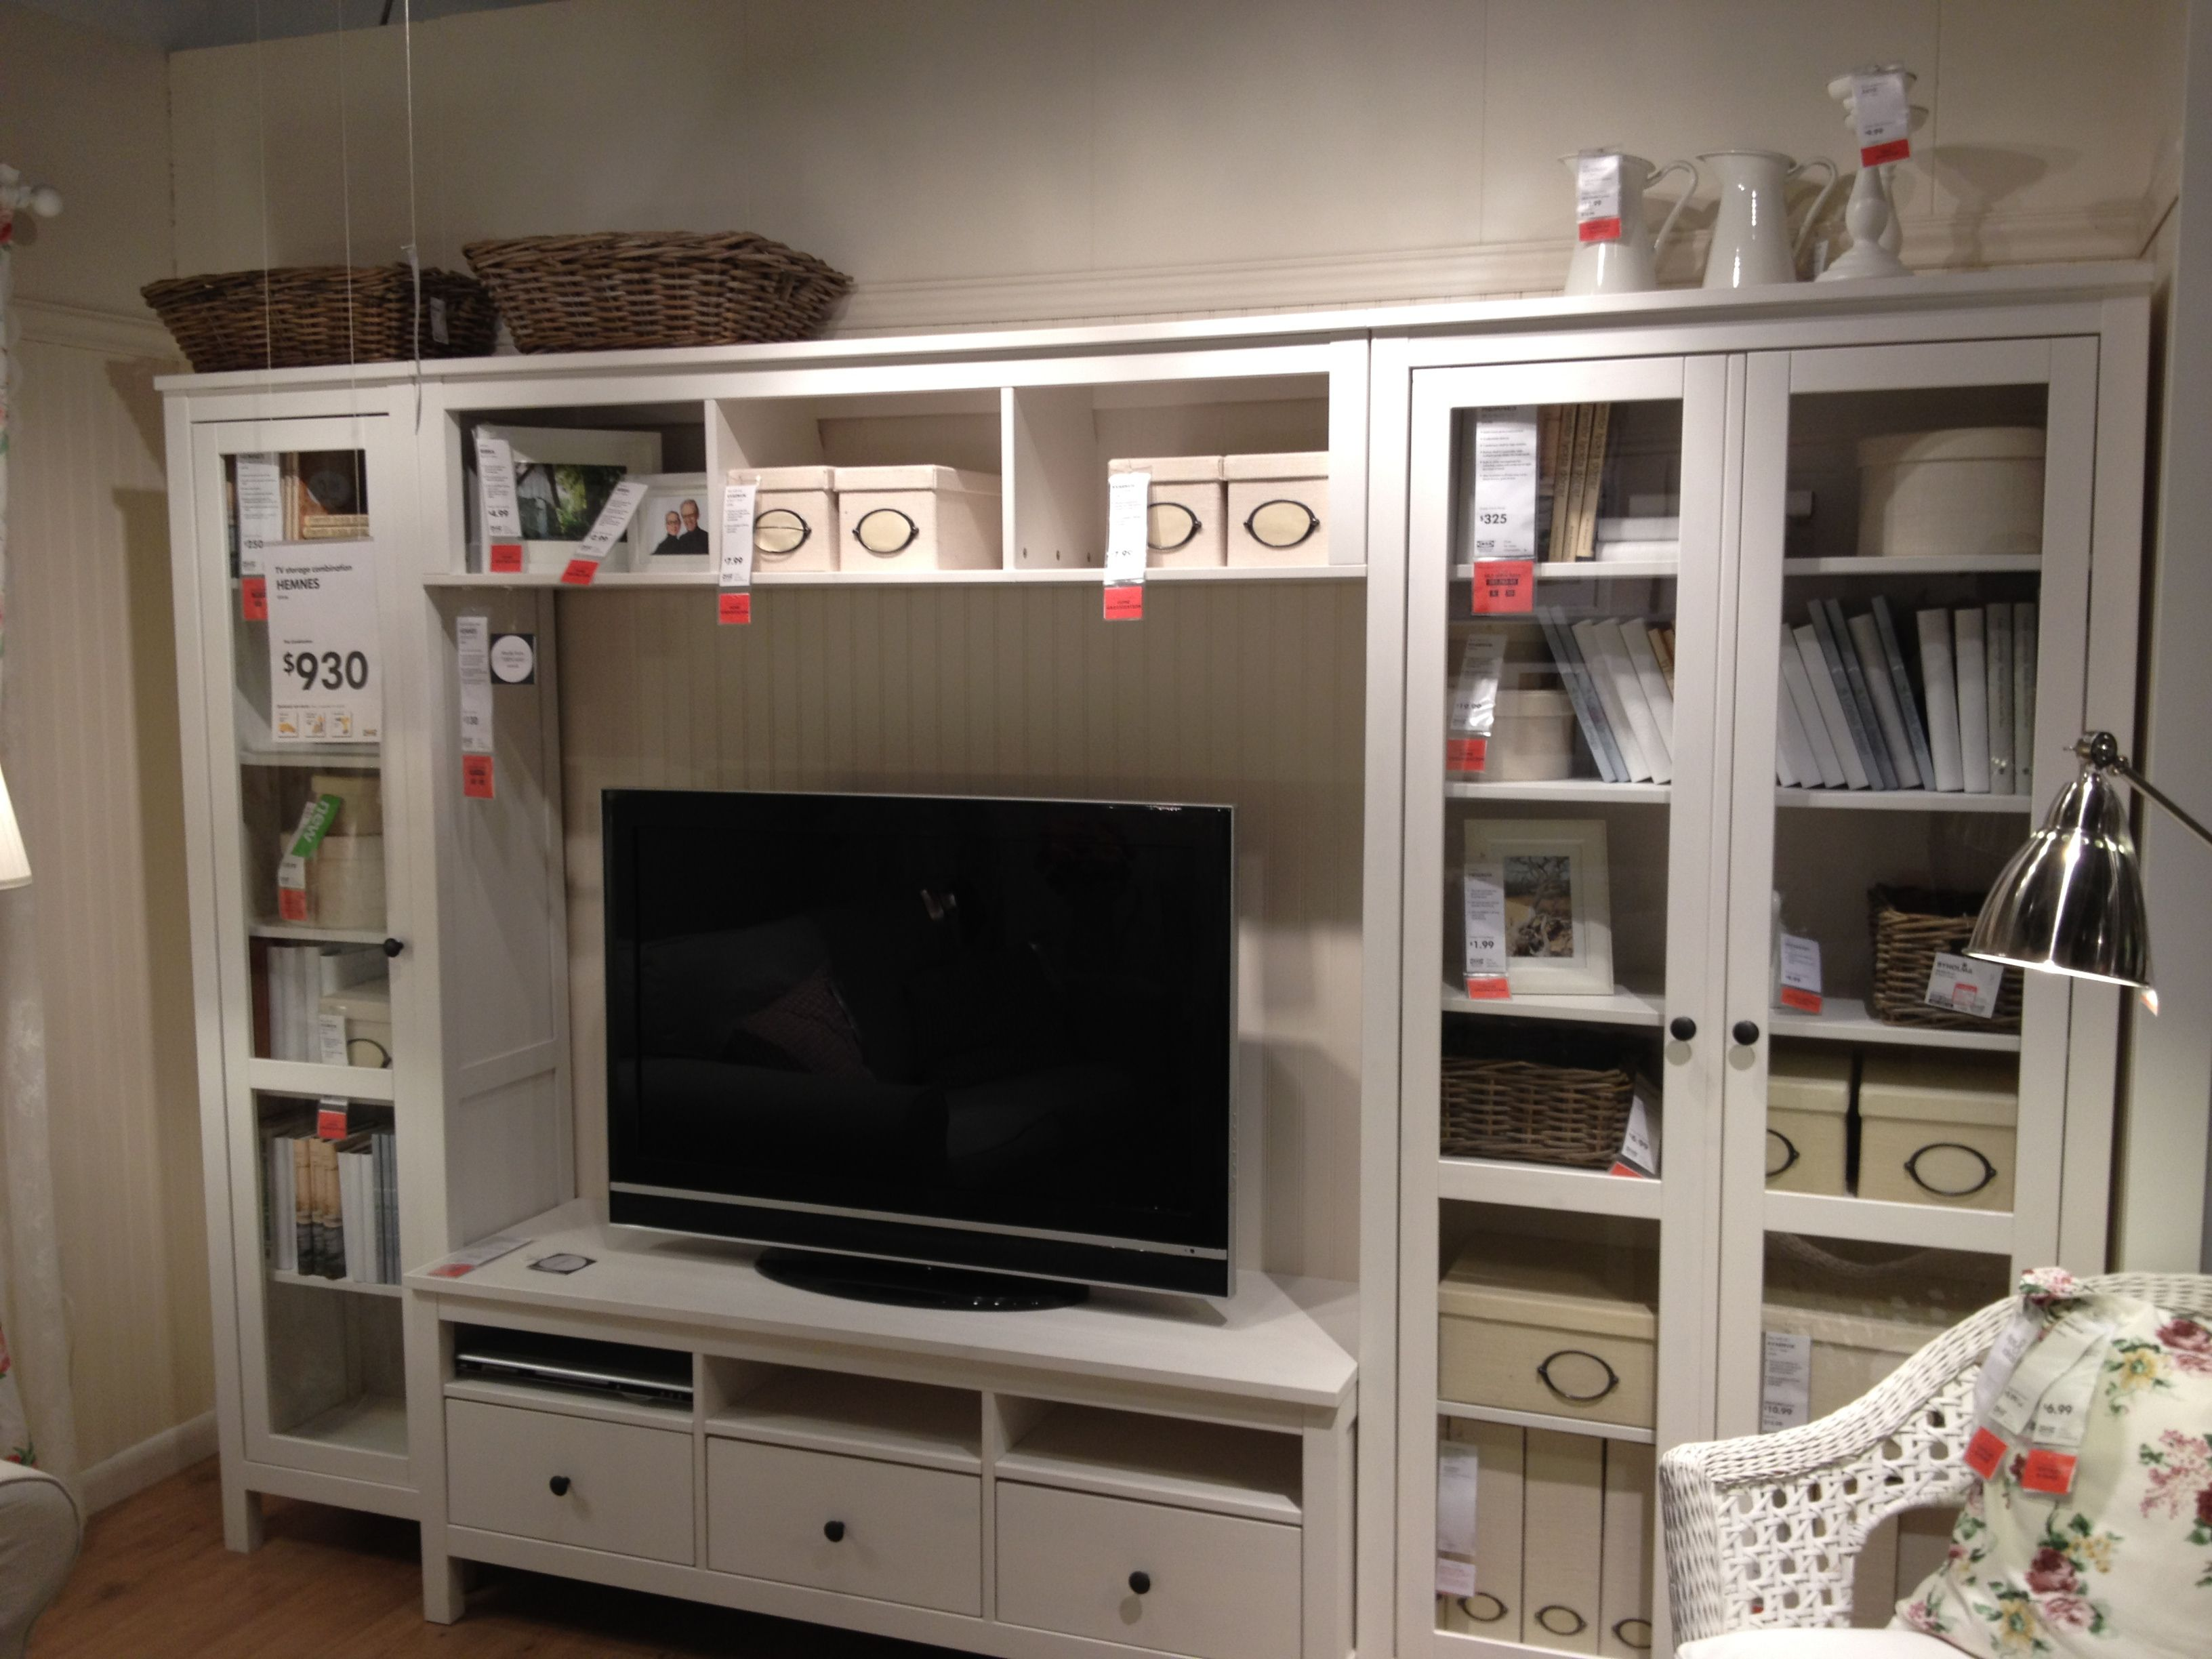 TV storage combination Ikea Hemnes $930 | Loft | Pinterest ...